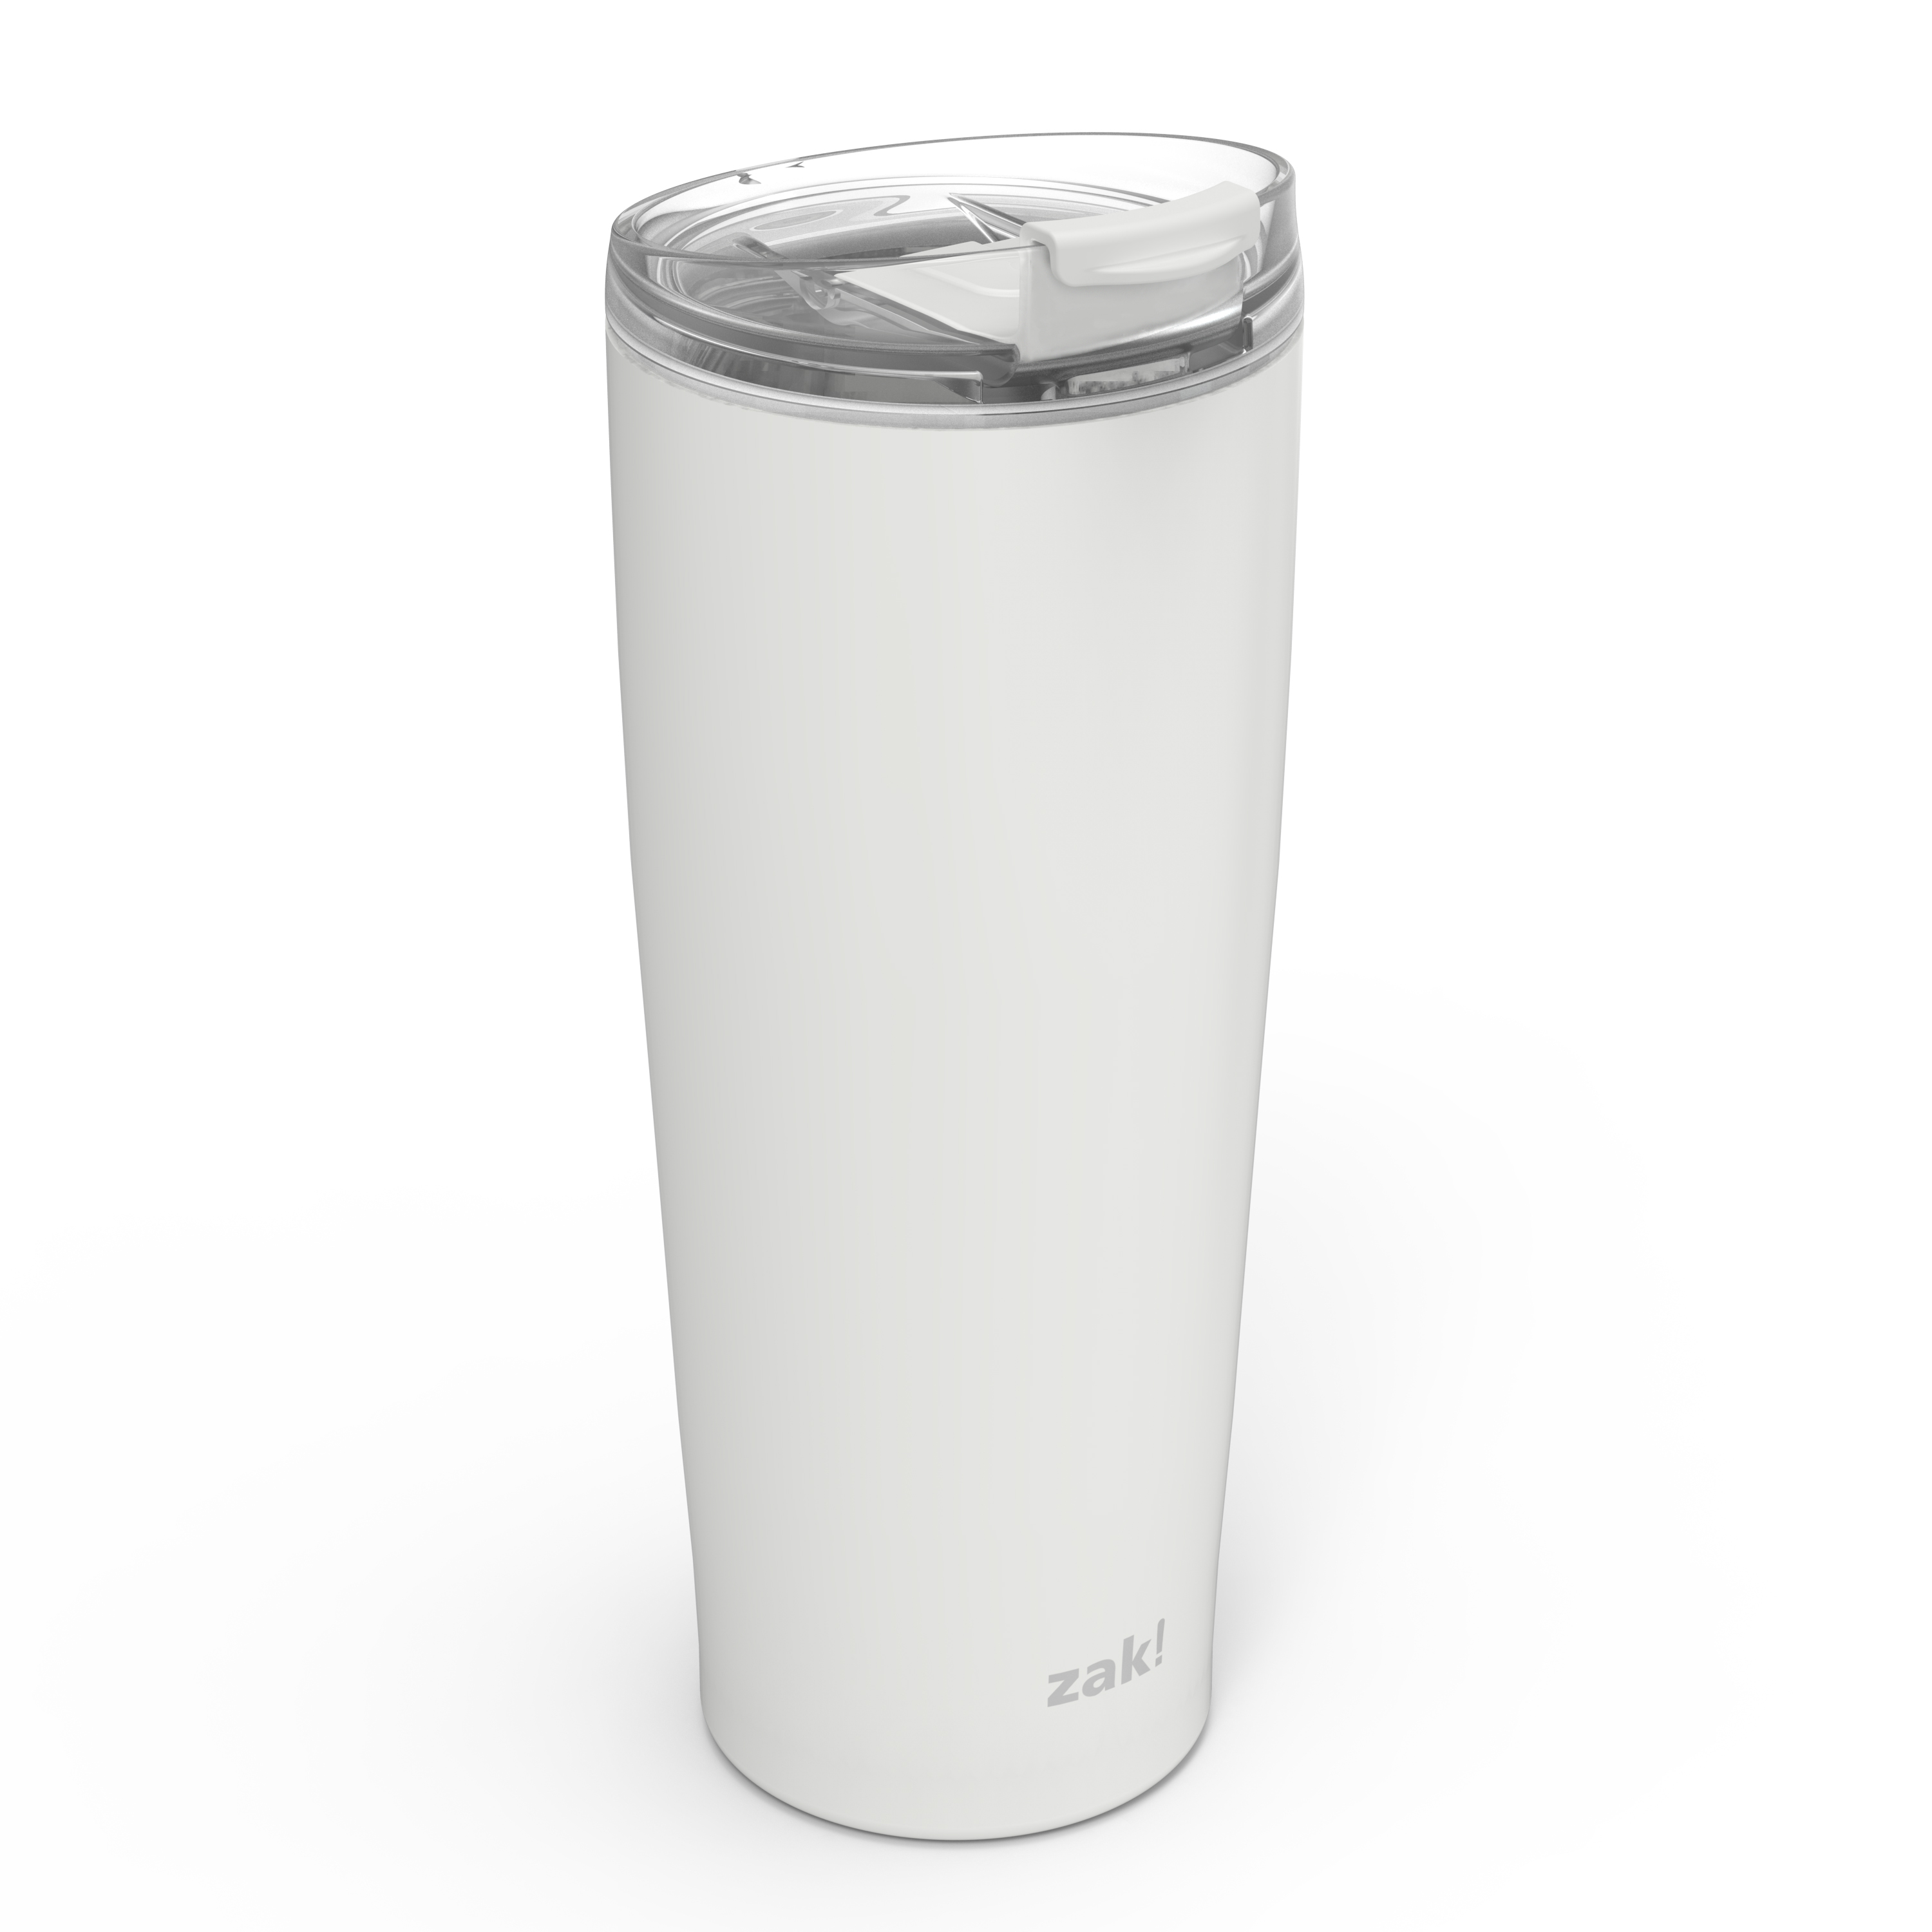 Aberdeen 30 ounce Vacuum Insulated Stainless Steel Tumbler, Gray slideshow image 4